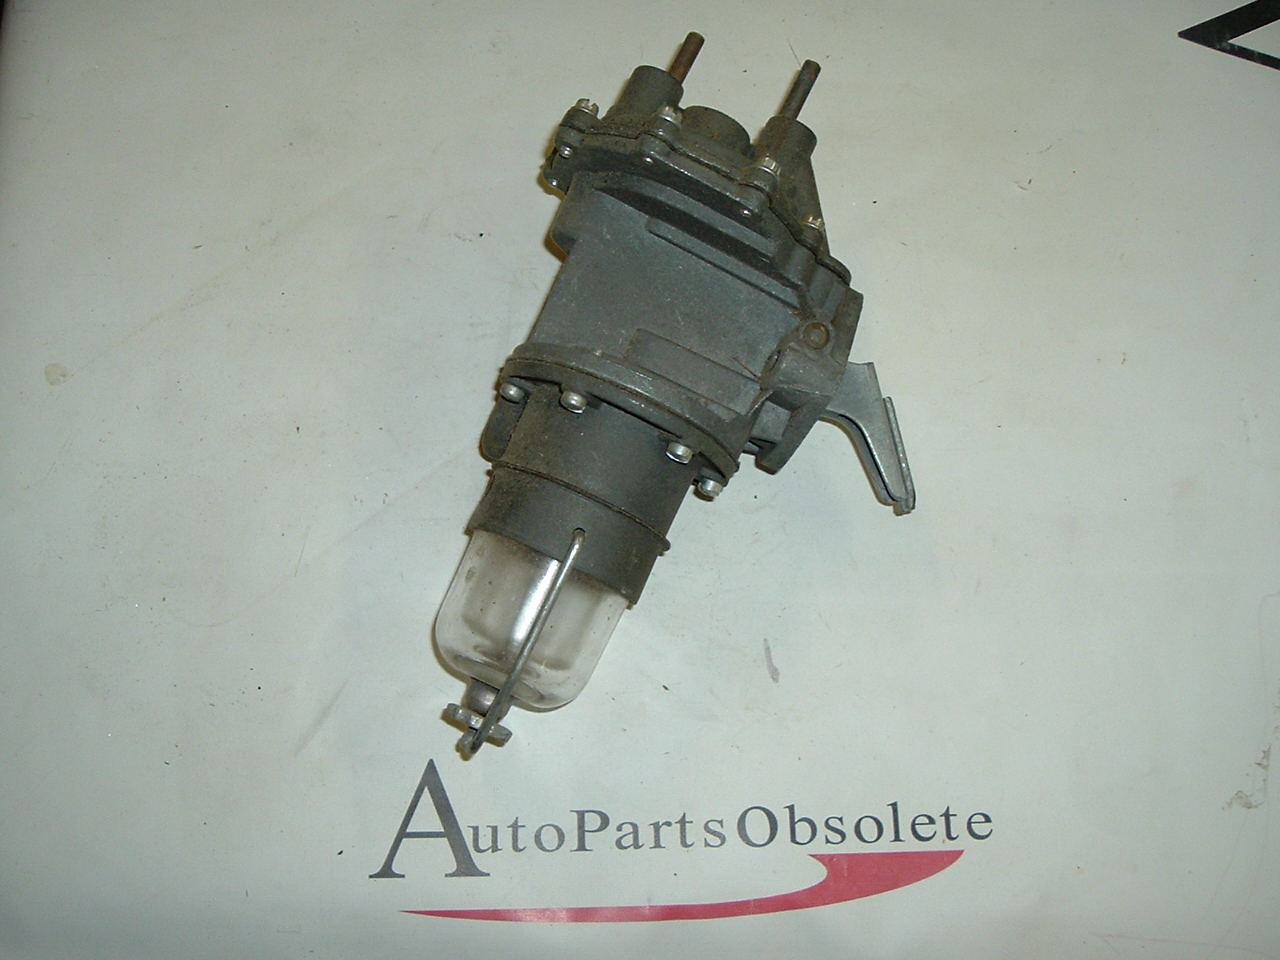 1955 1956 1957 - 64 Ford & Truck Pickup fuel pump (A 4708rw)